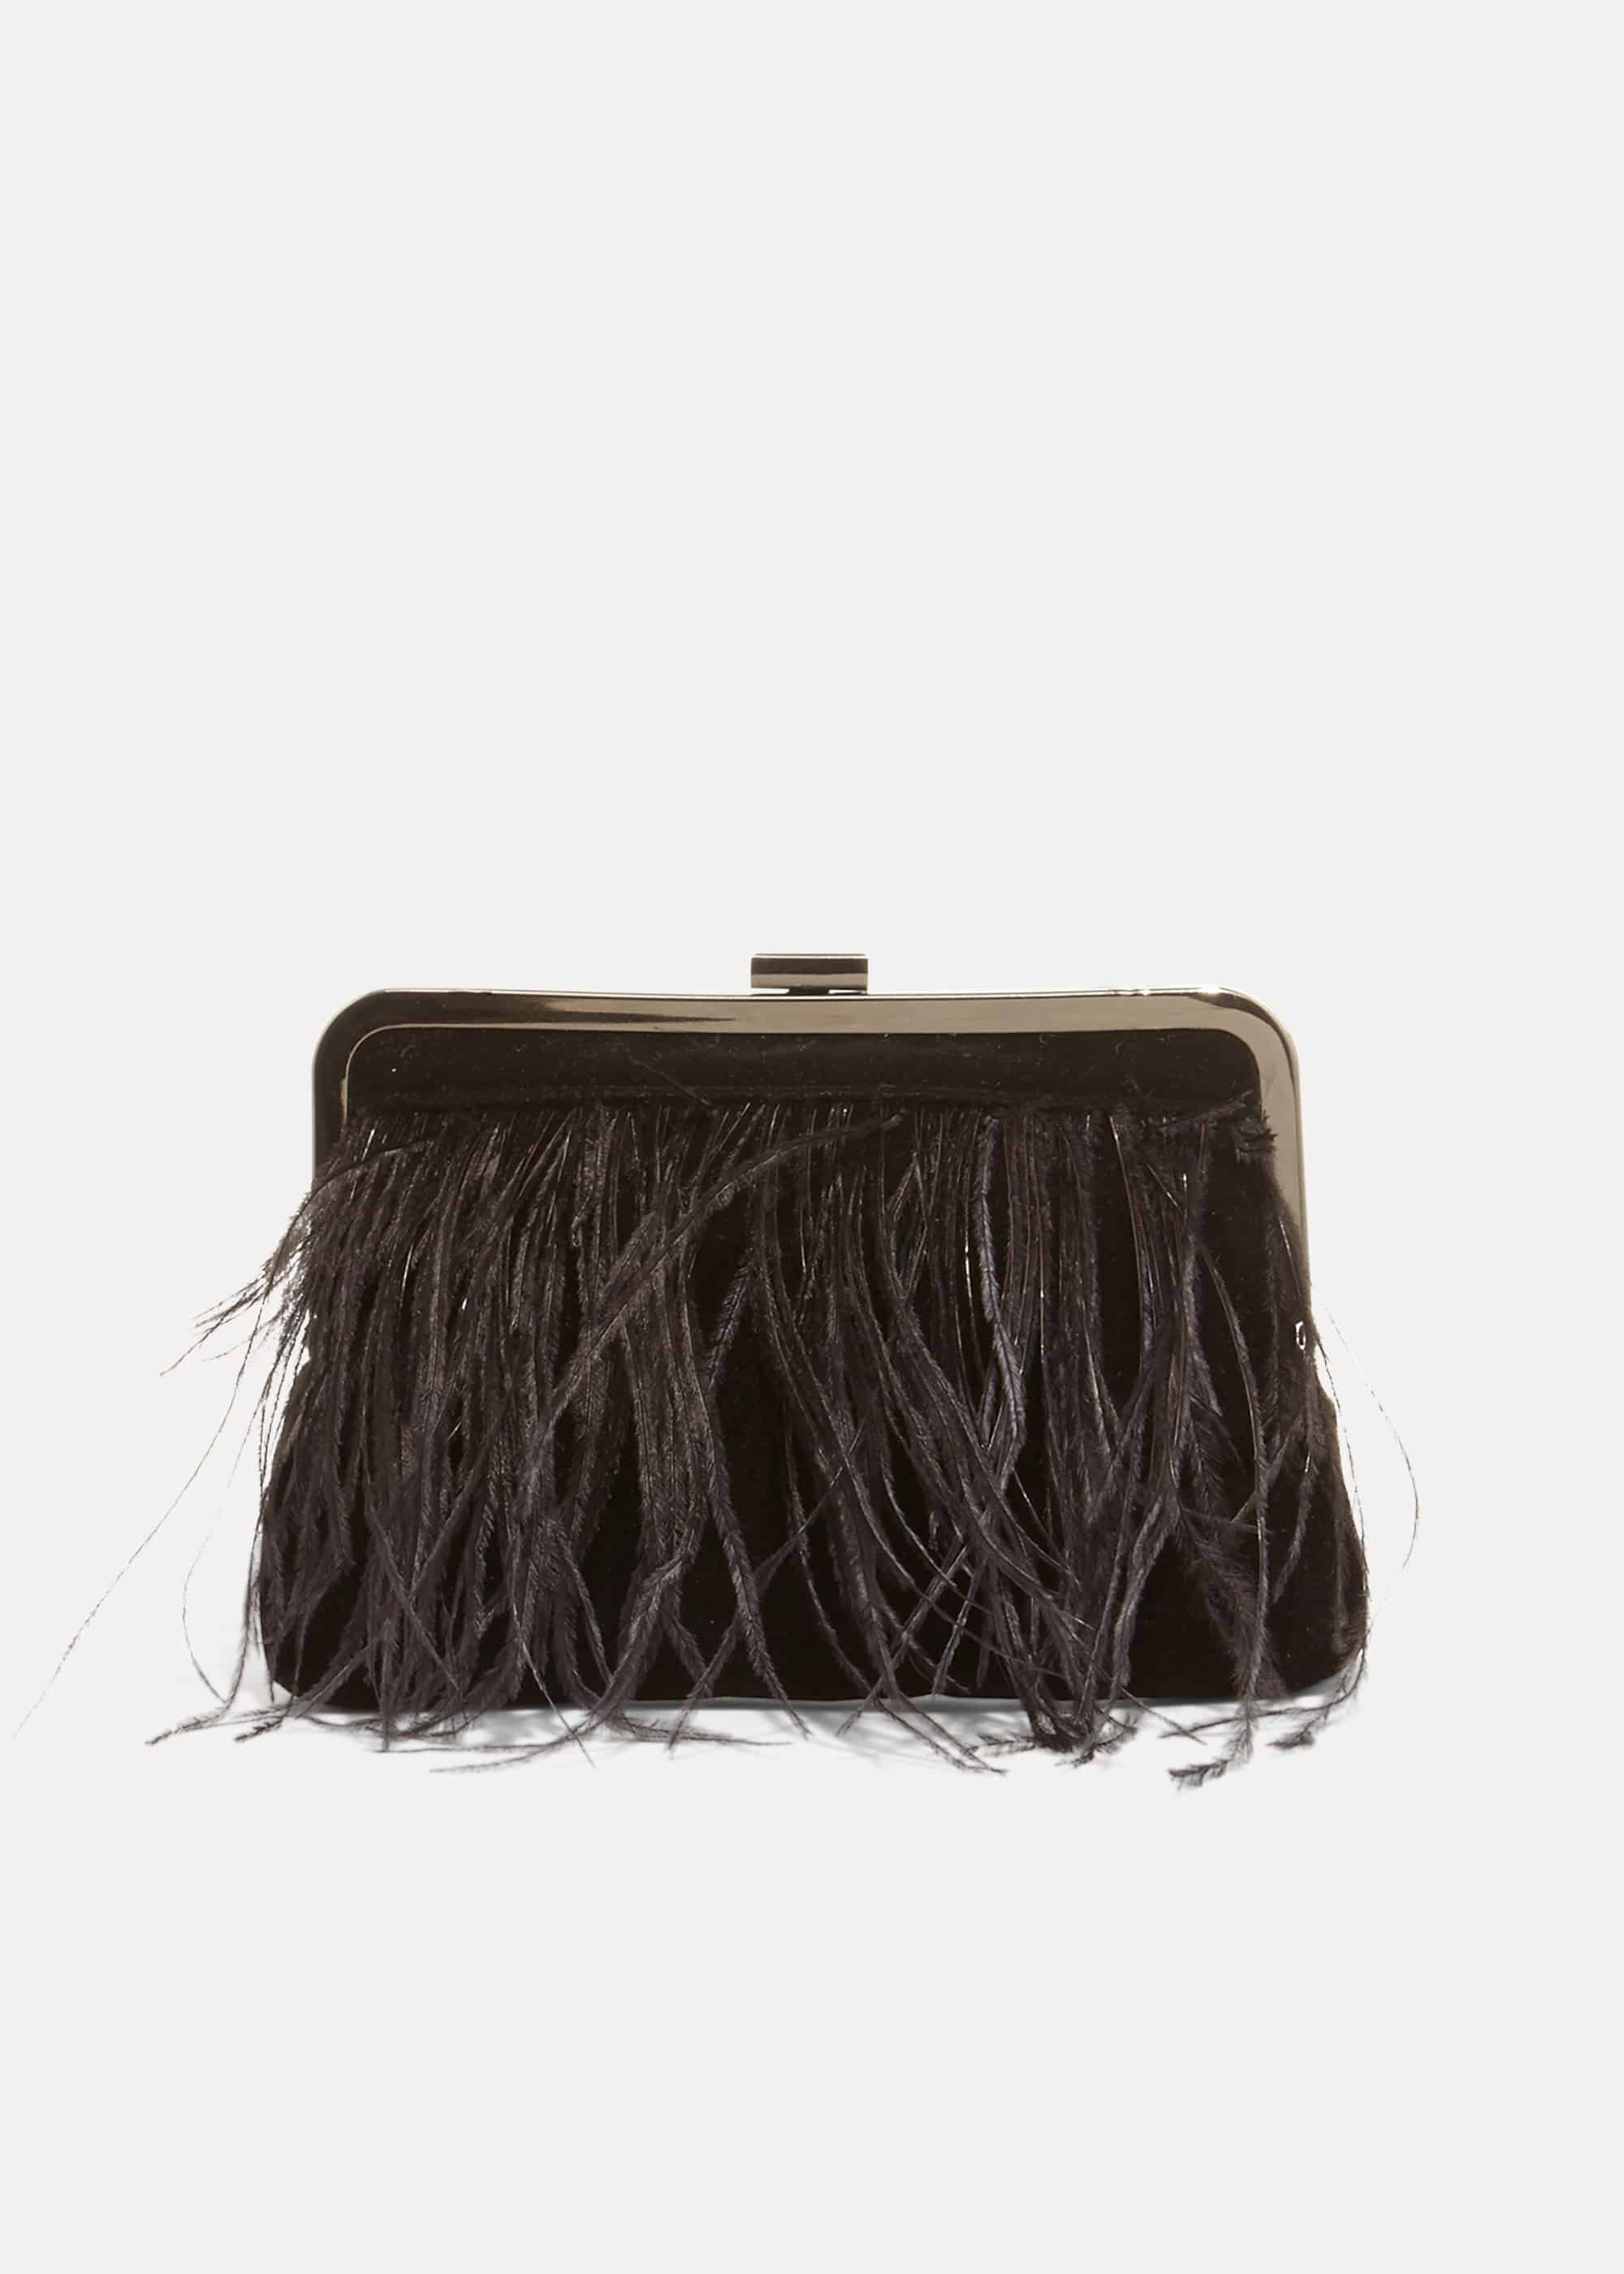 Phase Eight Fion Feather Clutch Bag, Black, Bag